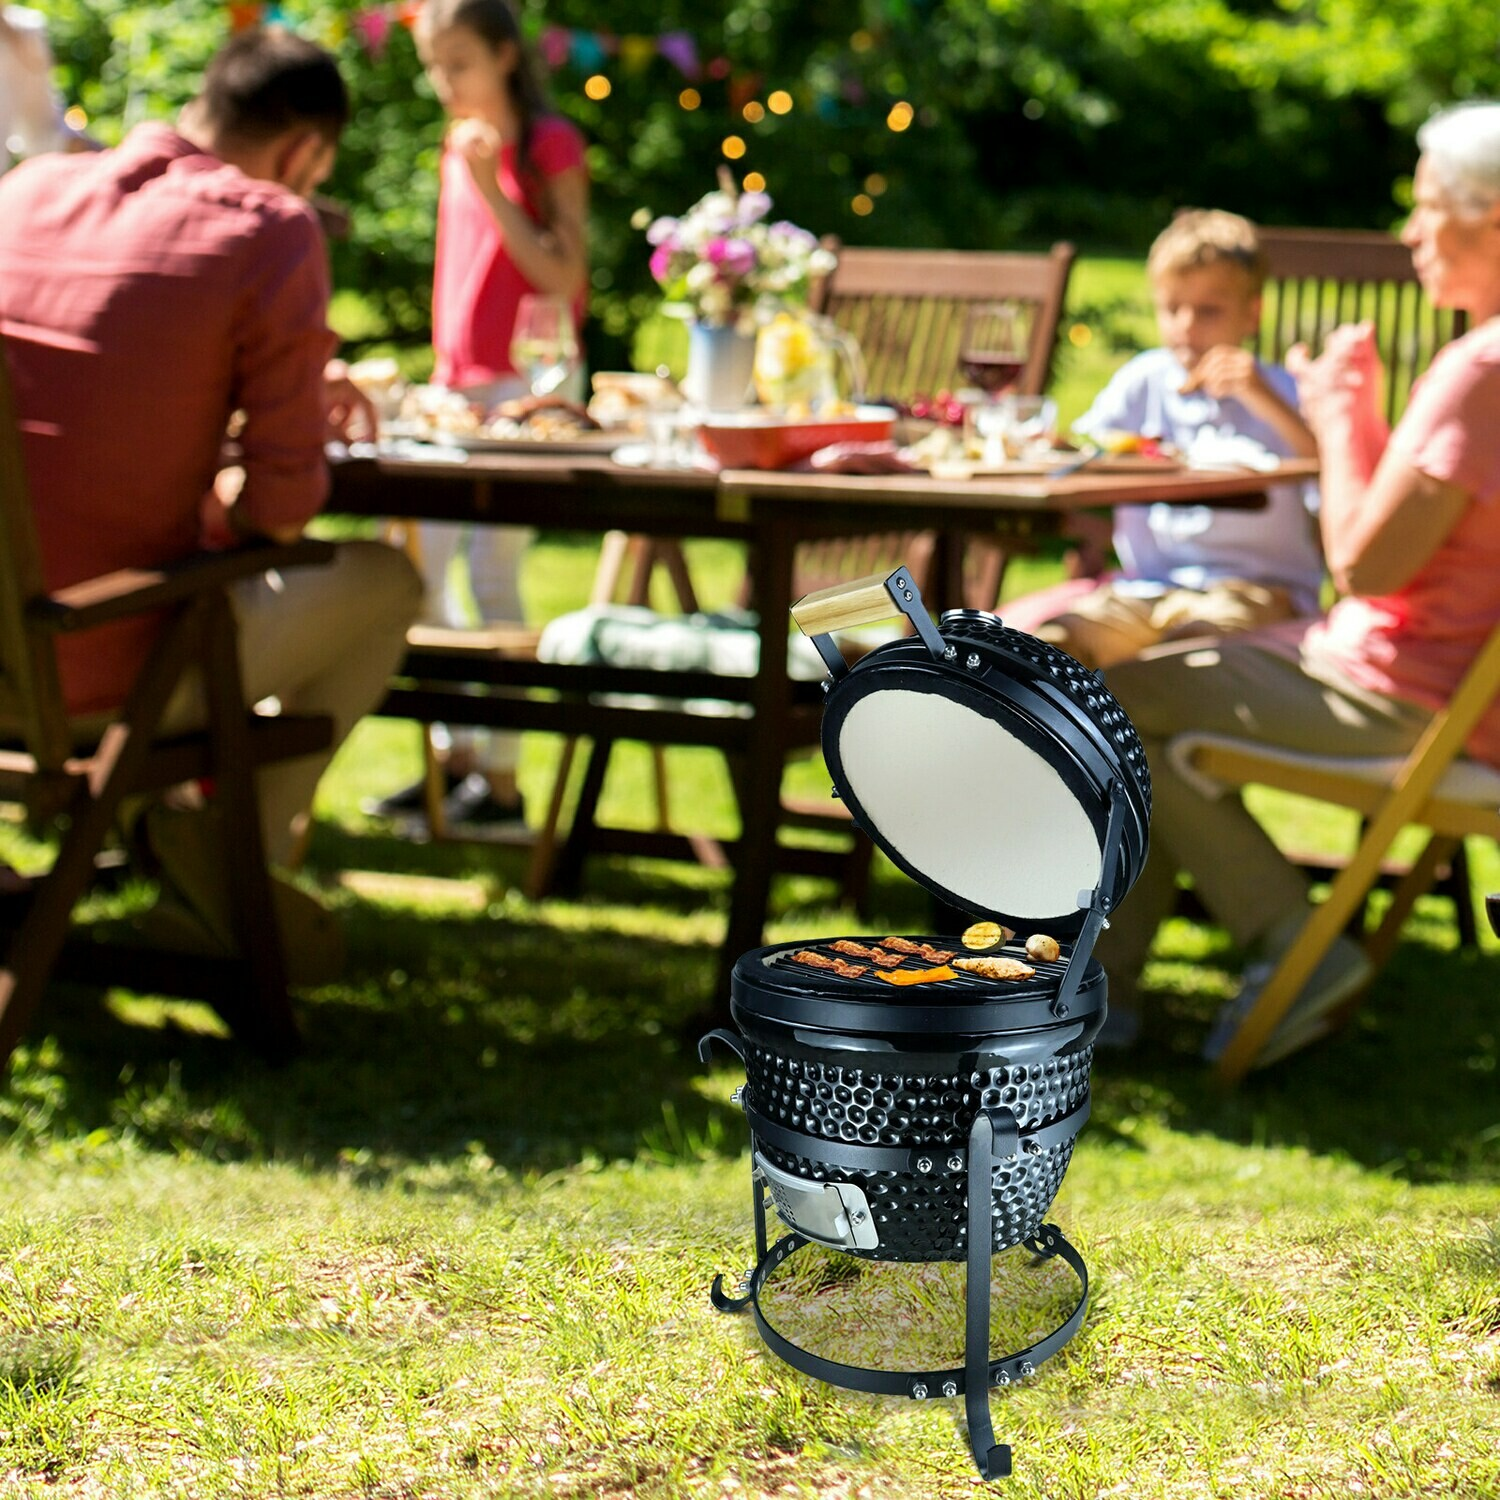 Outsunny® Hochleistungs-Holzkohlengrill BBQ Campinggrill Abschliessbarer Deckel Thermometer Gusseisen